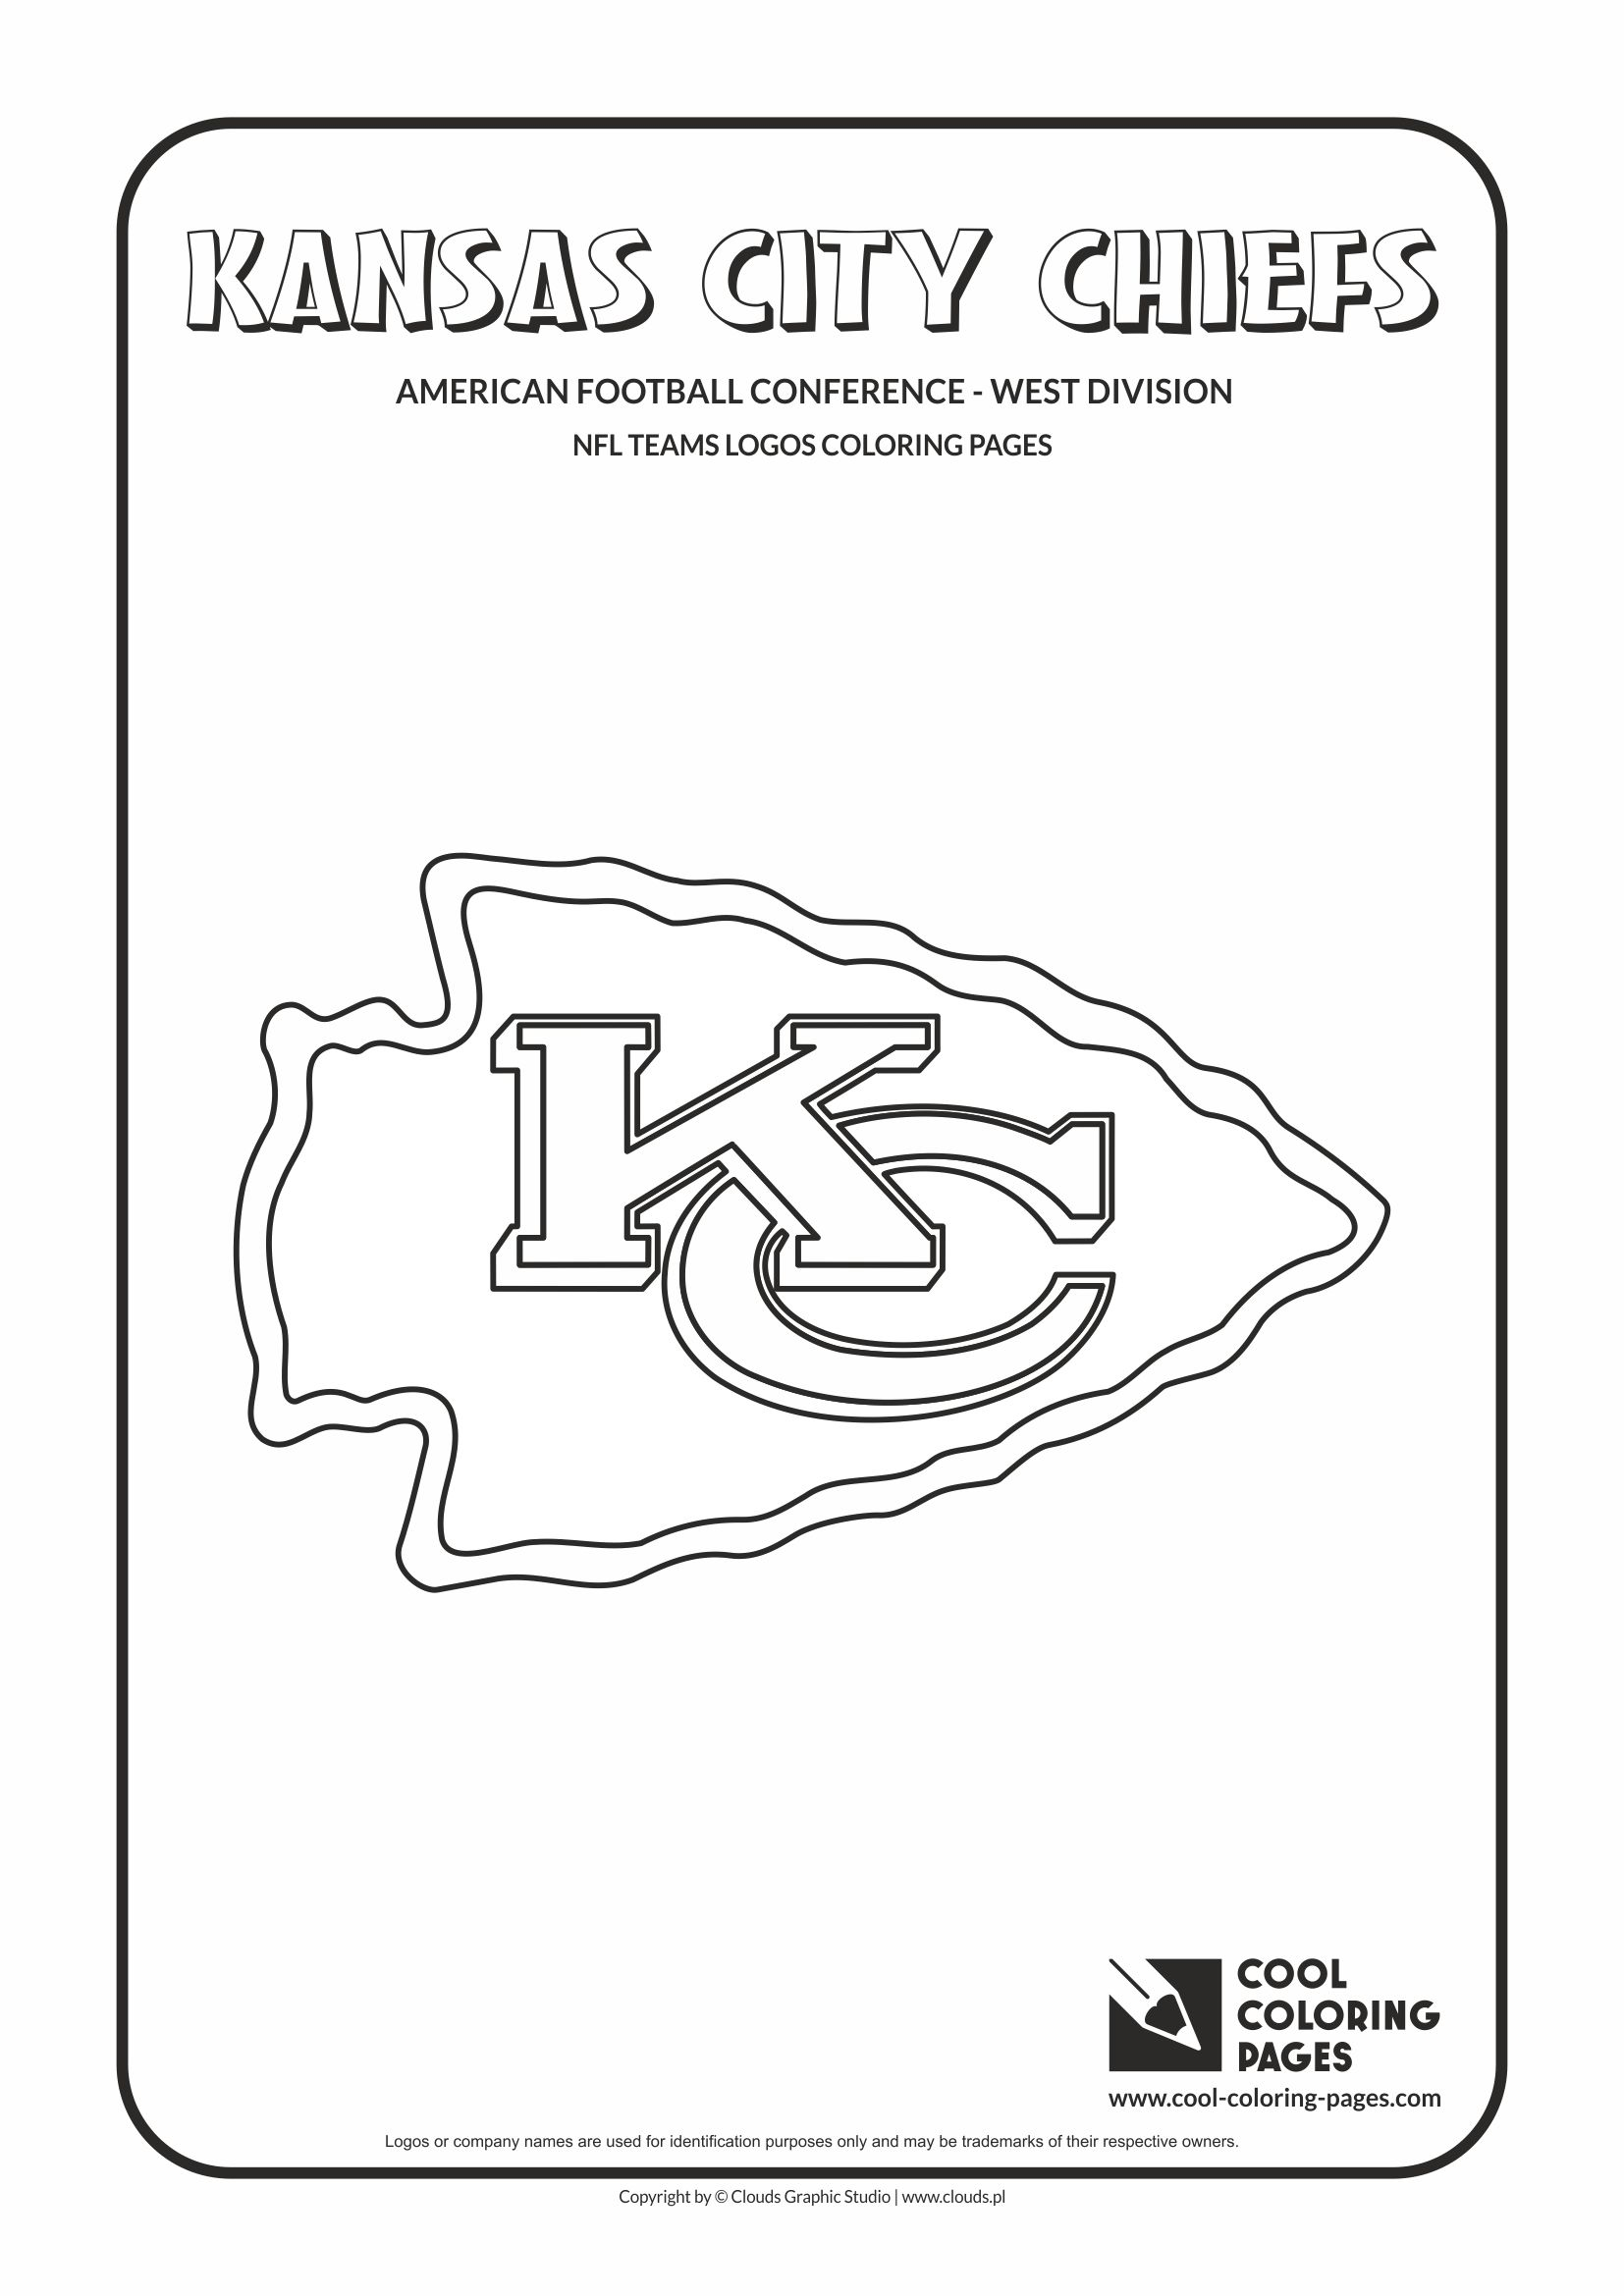 kc chiefs coloring pages - photo#15